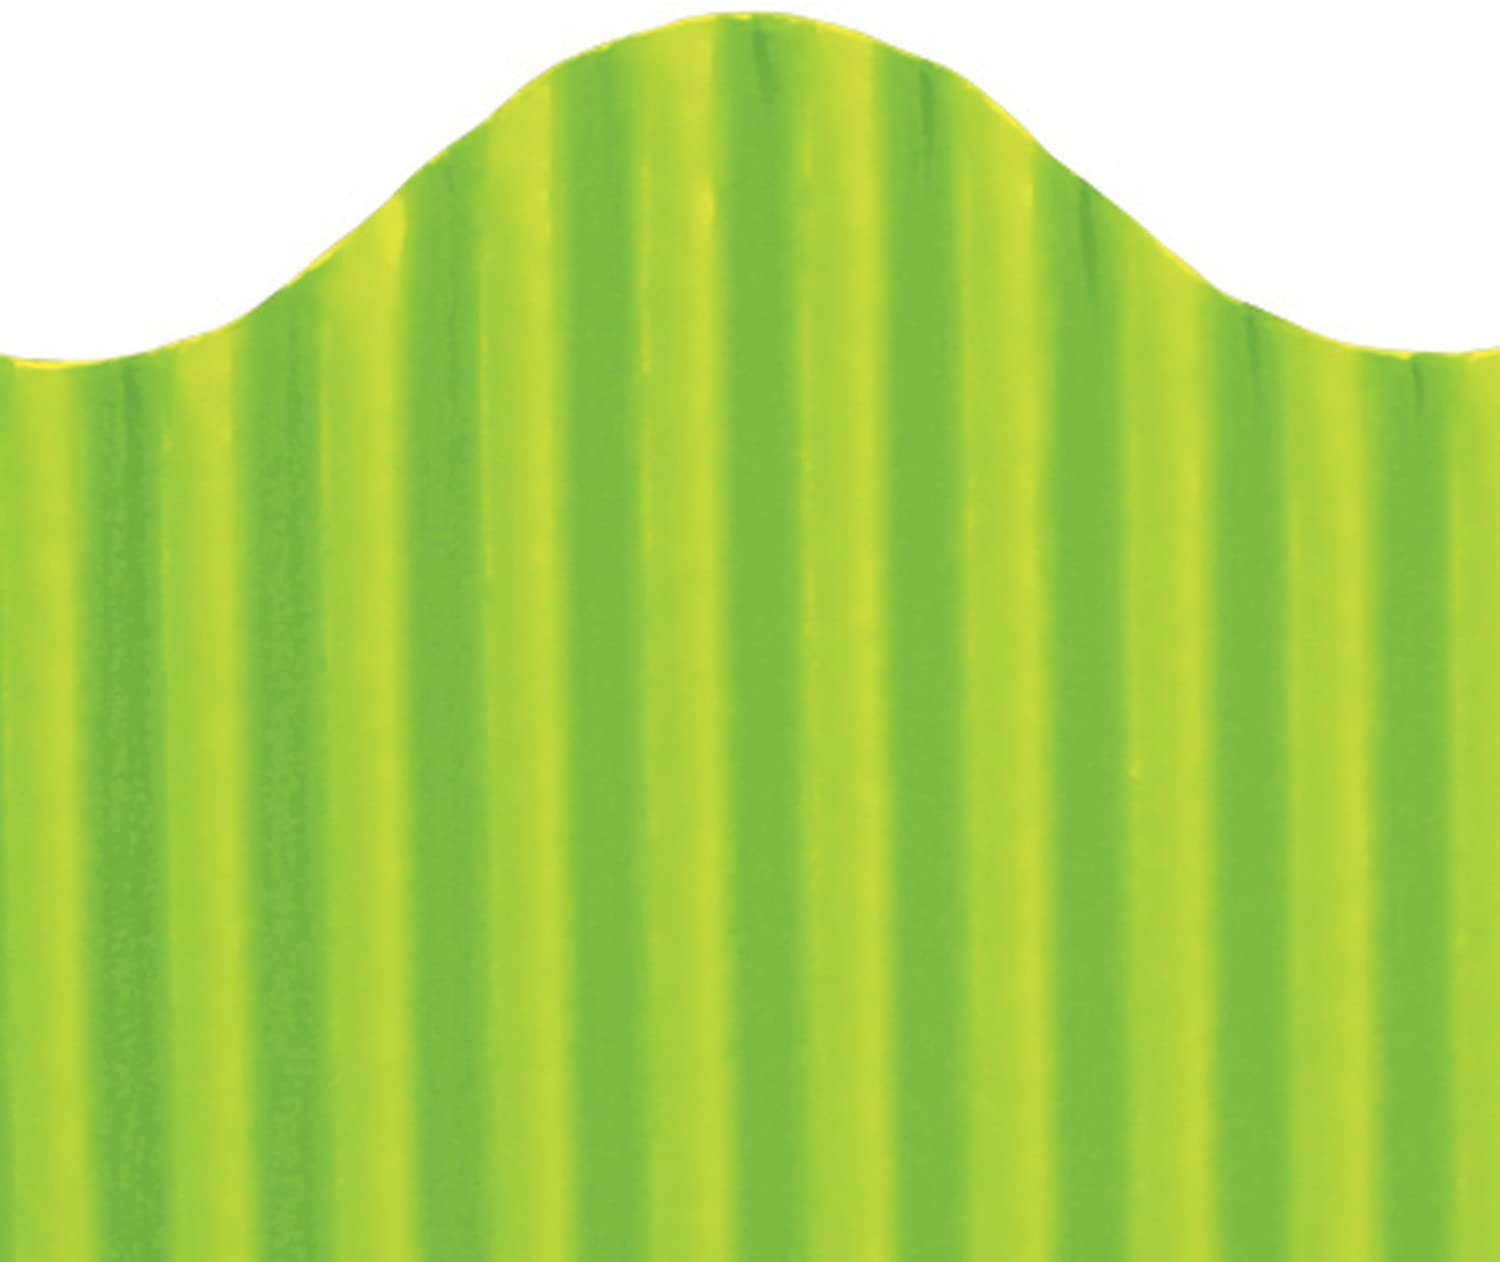 Top Notch Teacher Products Corrugated Border, Lime, 2 1/4